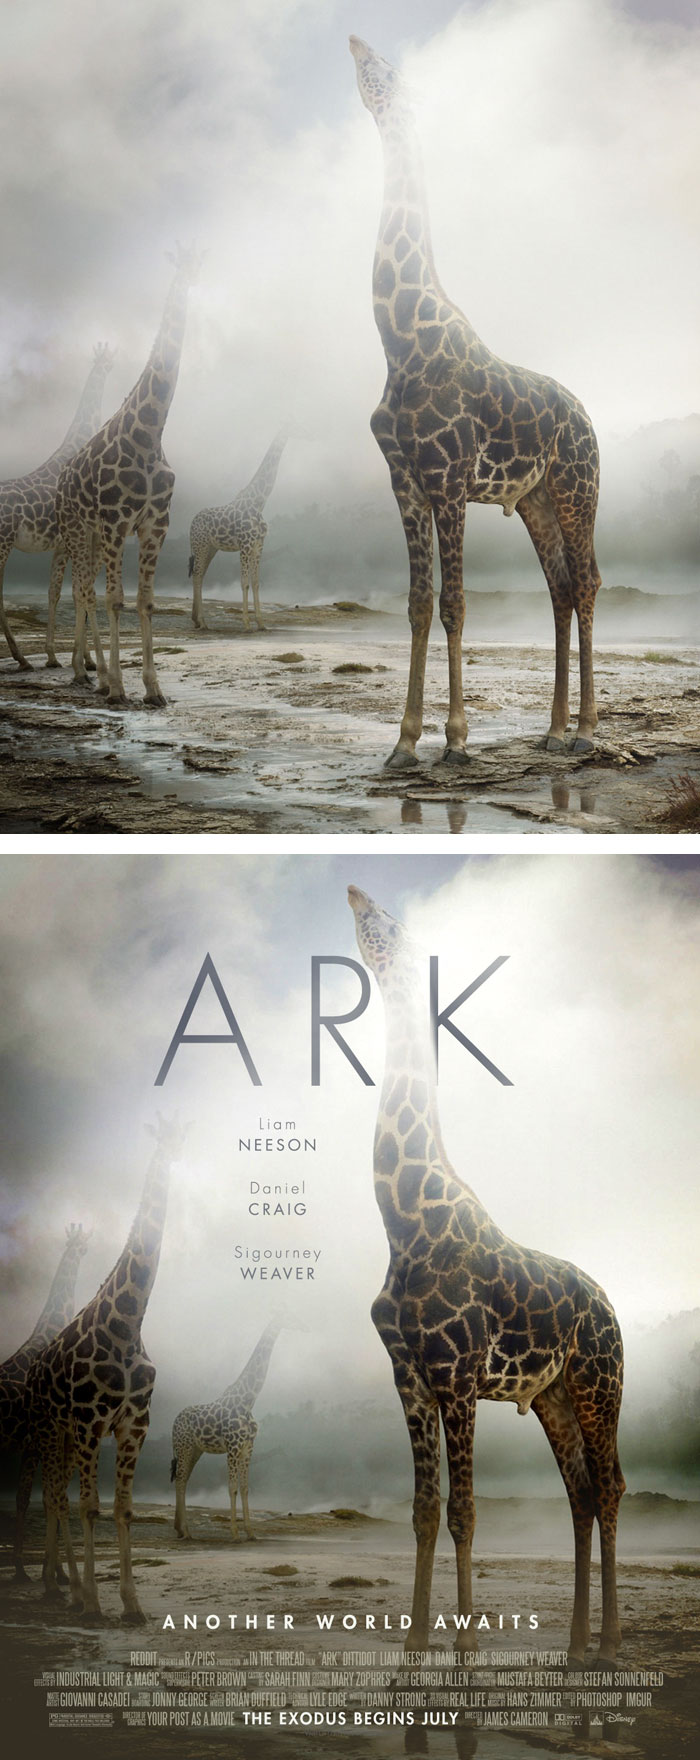 random-photos-turned-professional-movie-posters-your-post-as-a-movie-7